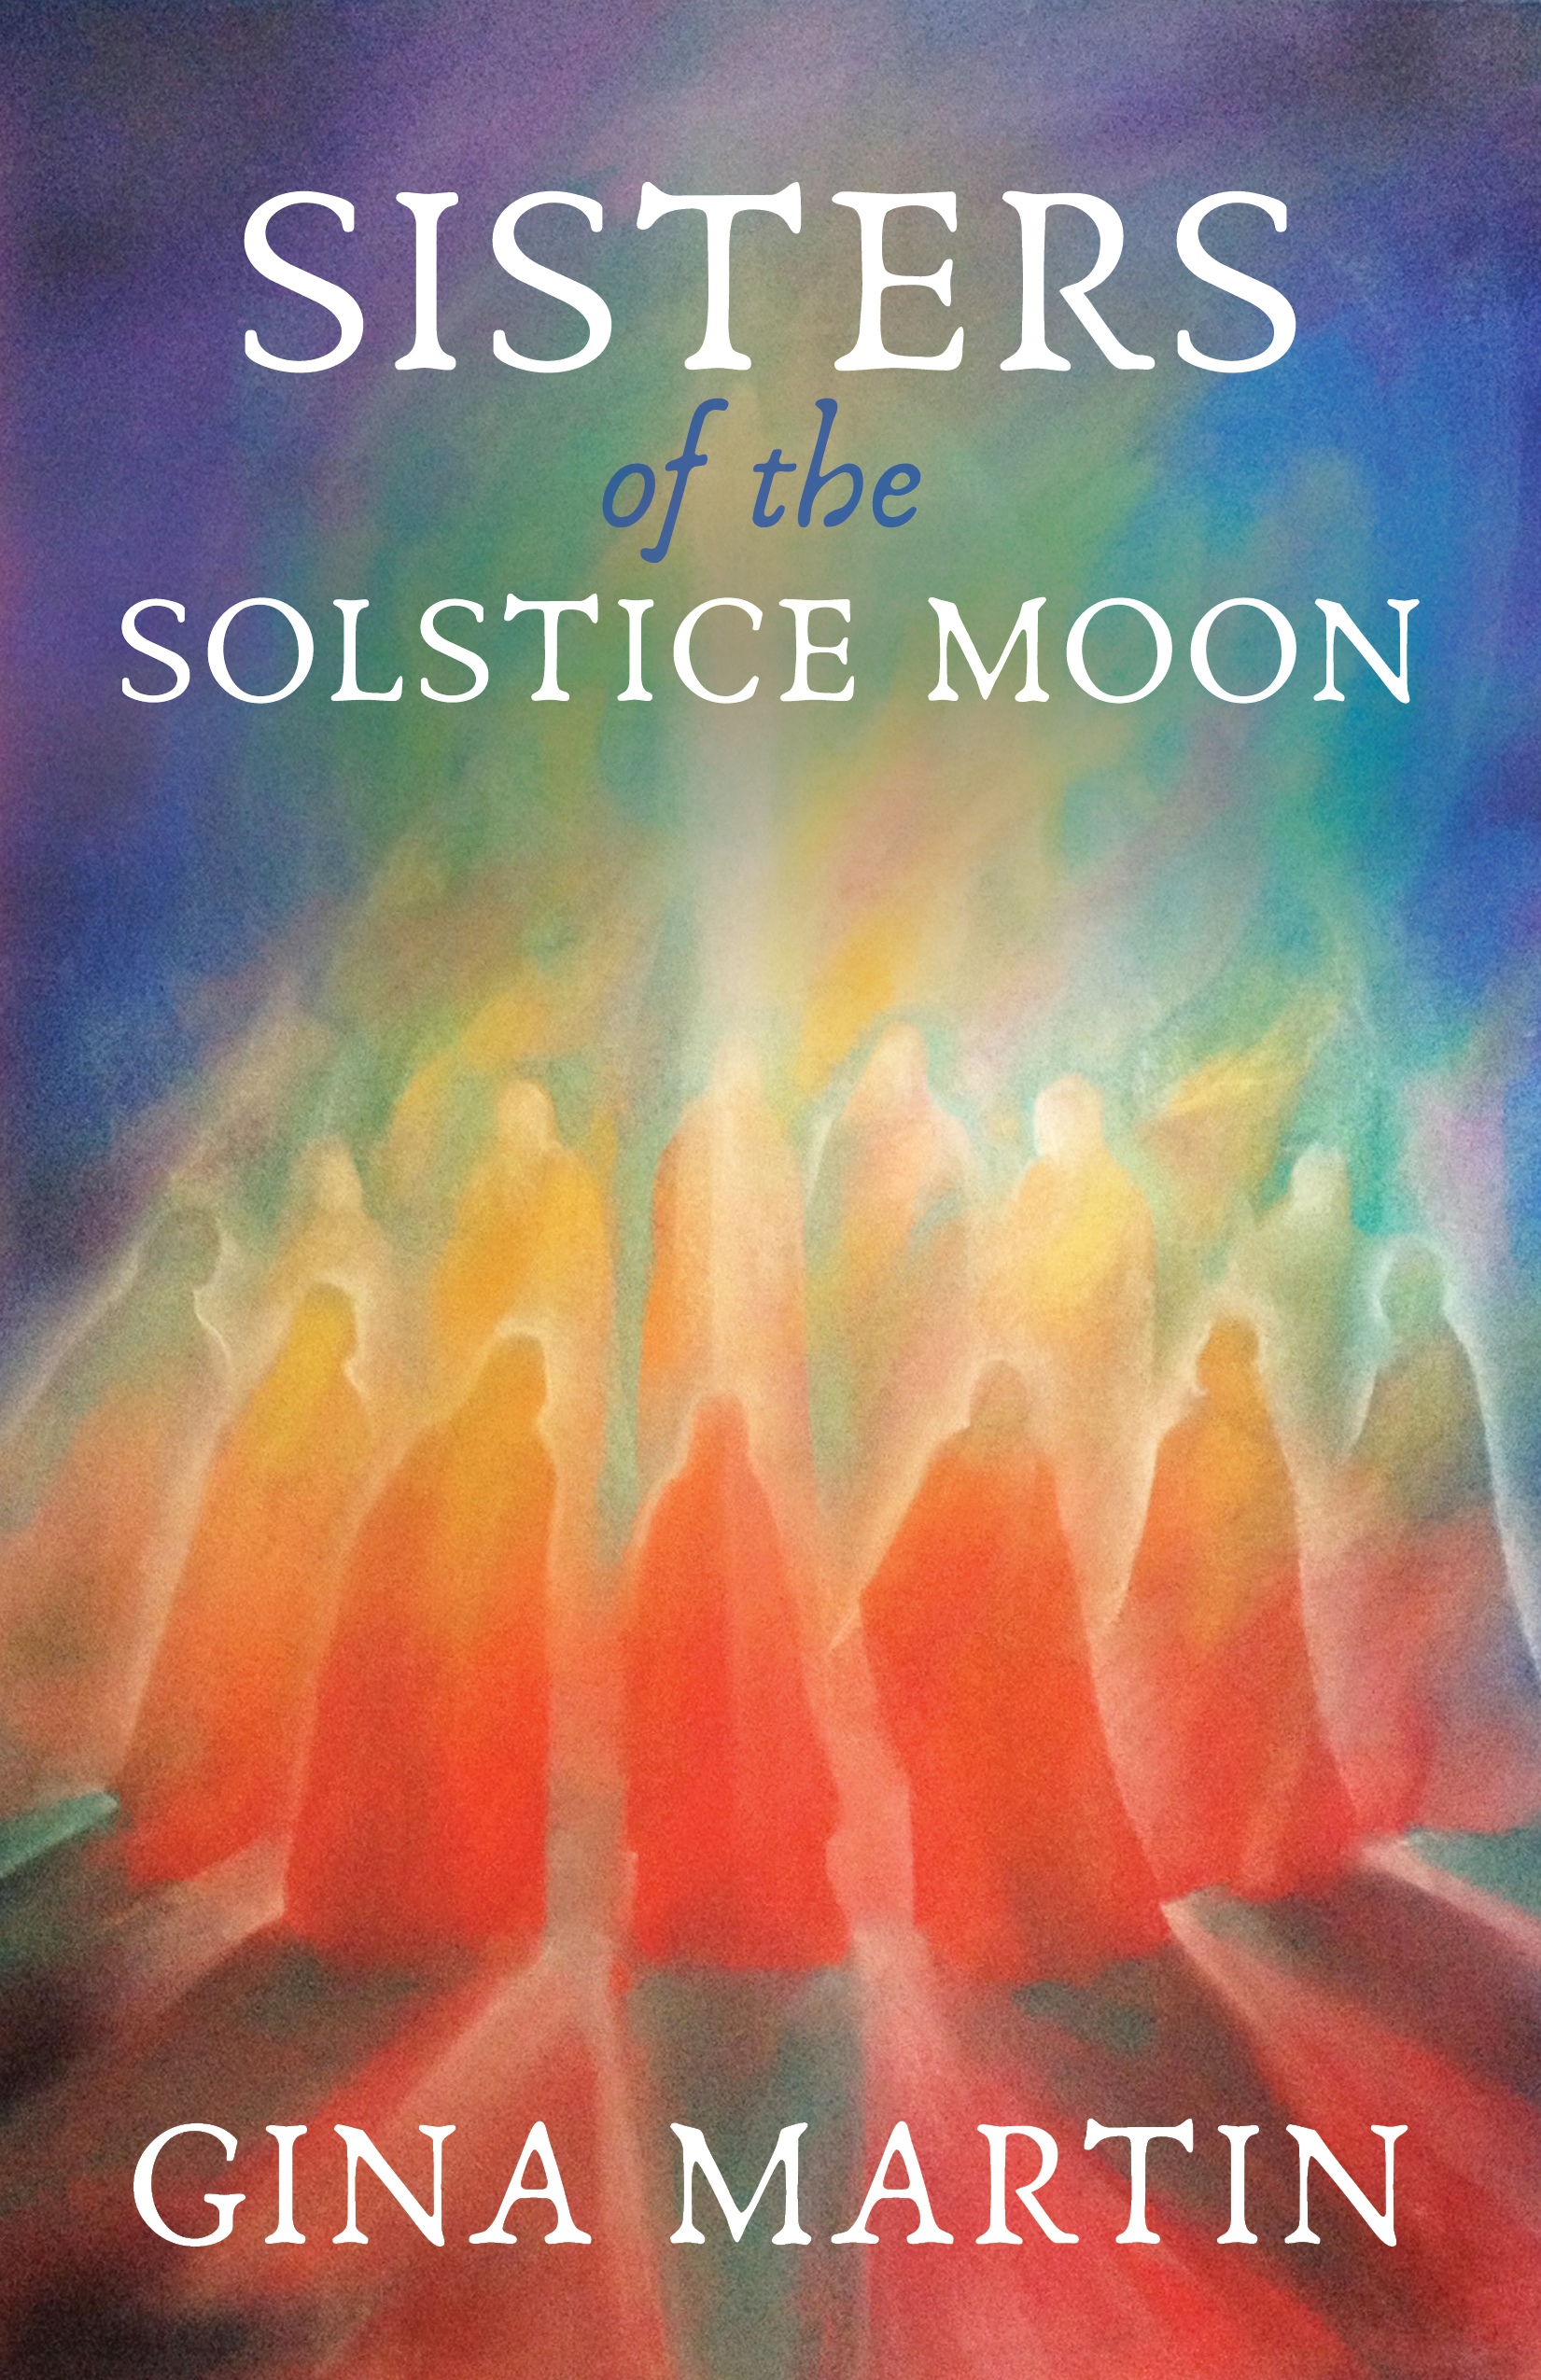 Sisters of the Solstice Moon by Gina Martin, Womancraft Publishing